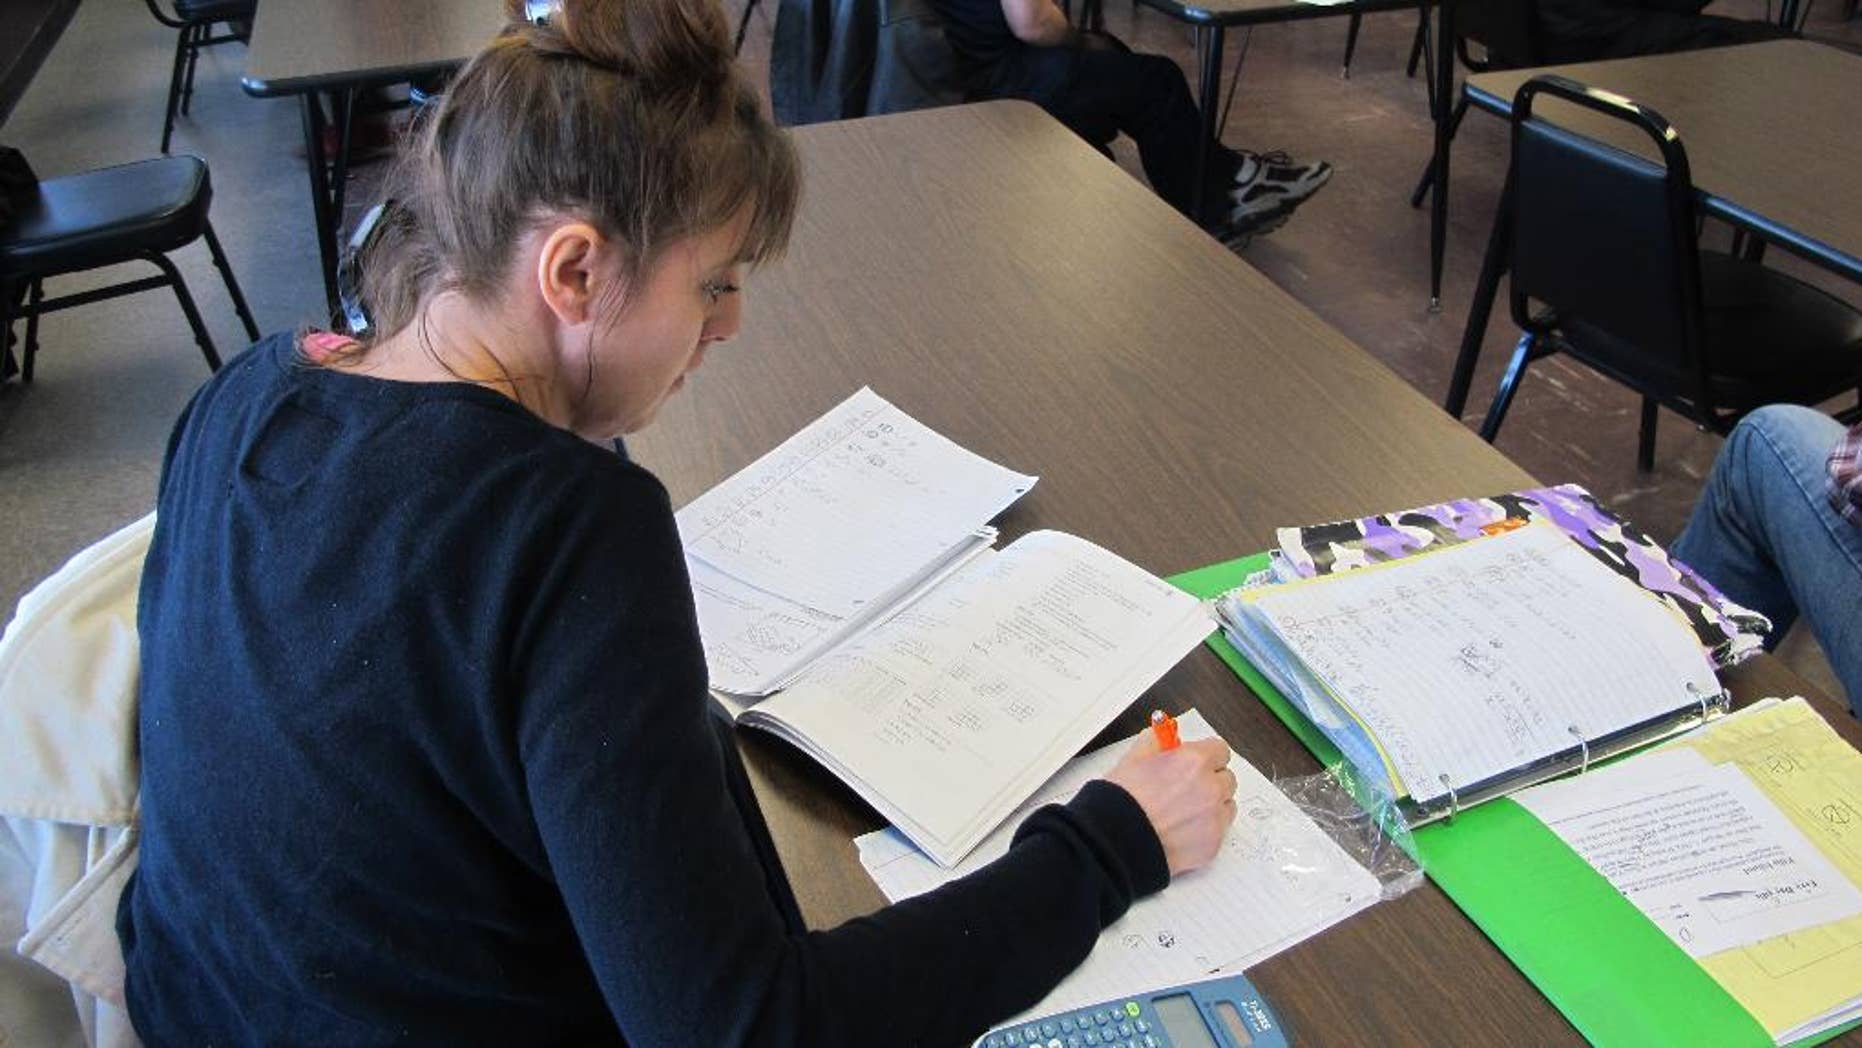 Cheryl Keller, 34, of Cheektowaga practices math problems during an adult education class at the Maryvale Community Education Building in Cheektowaga, N.Y. on March 23, 2015.  Keller is preparing to take the TASC test that New York state now requires for a high school equivalency diploma. The GED was overhauled last year to reflect the Common Core standards that have been adopted by most states and emphasize critical thinking. Two new high school equivalency exams that also incorporate some of those standards were also introduced last year.  (AP Photo/Carolyn Thompson)